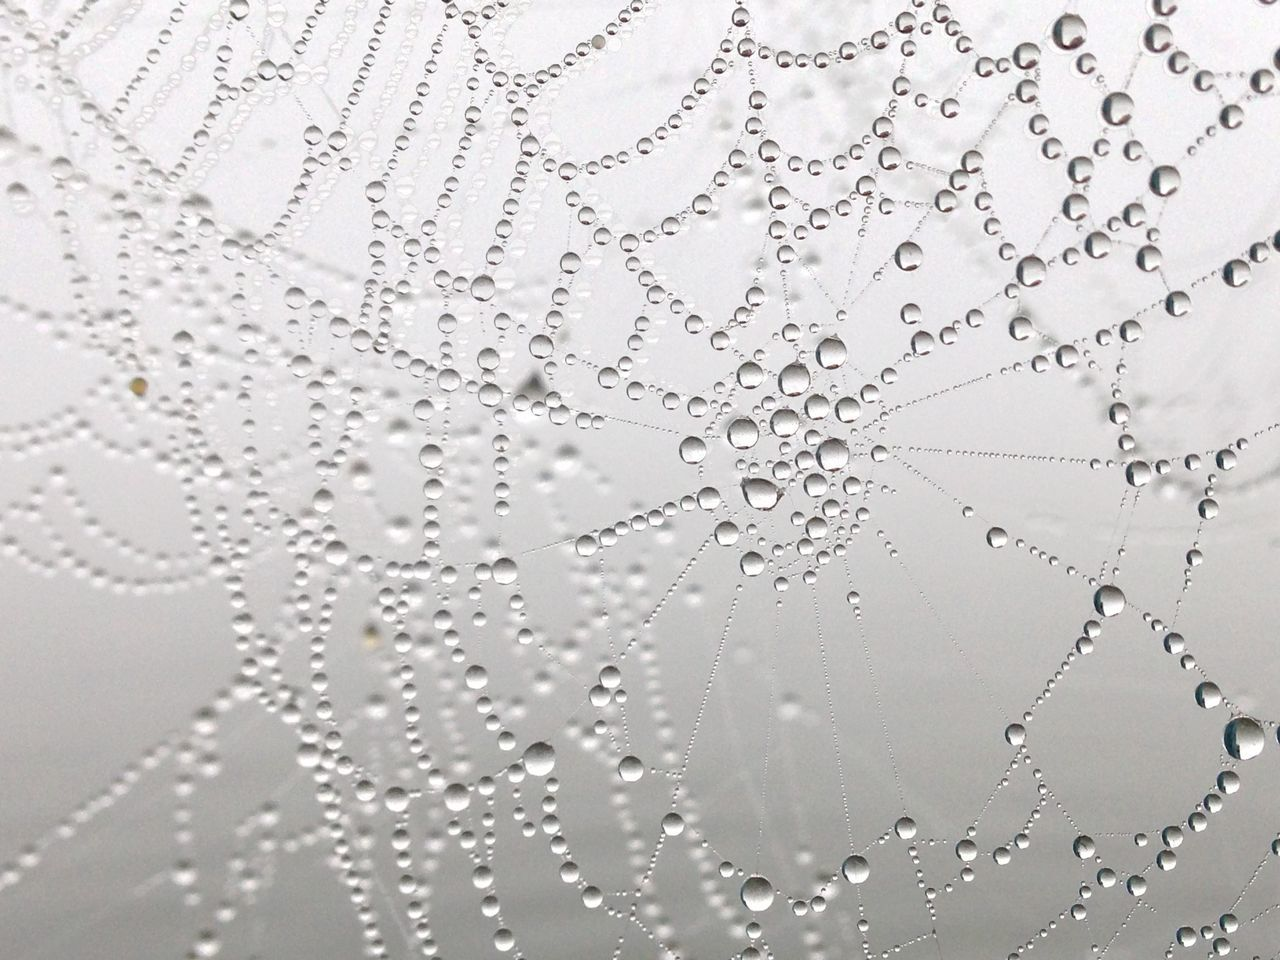 Backgrounds Black & White Blackandwhite Close-up Drops Of Water Fiber Spider Spider Spiderweb Water Water Drop